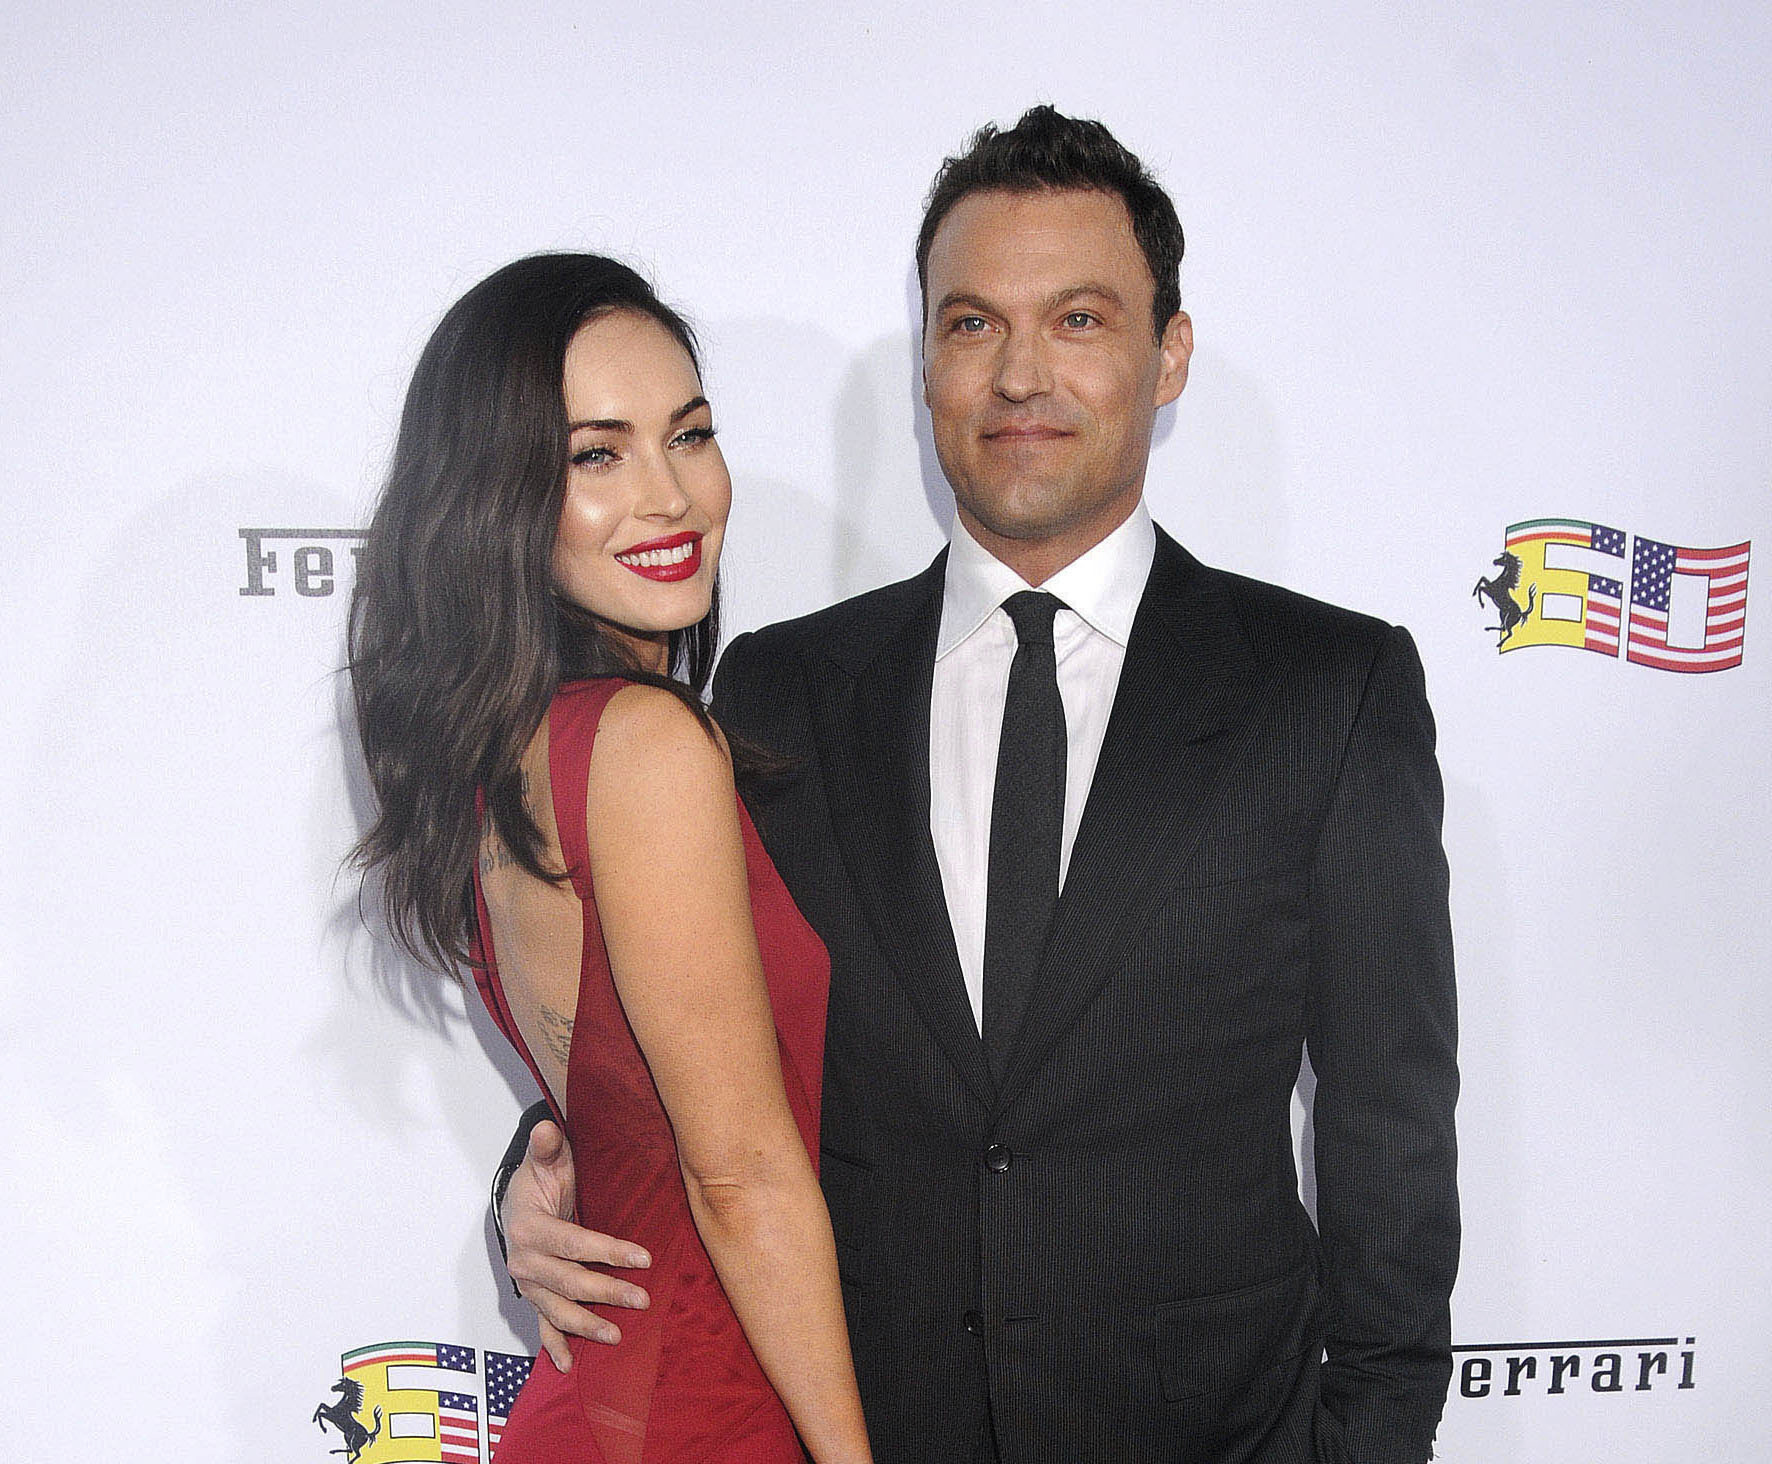 Brian Austin Green talks finding out about Megan Foxs new romance with Machine Gun Kelly, being betrayed by Courtney Stodden